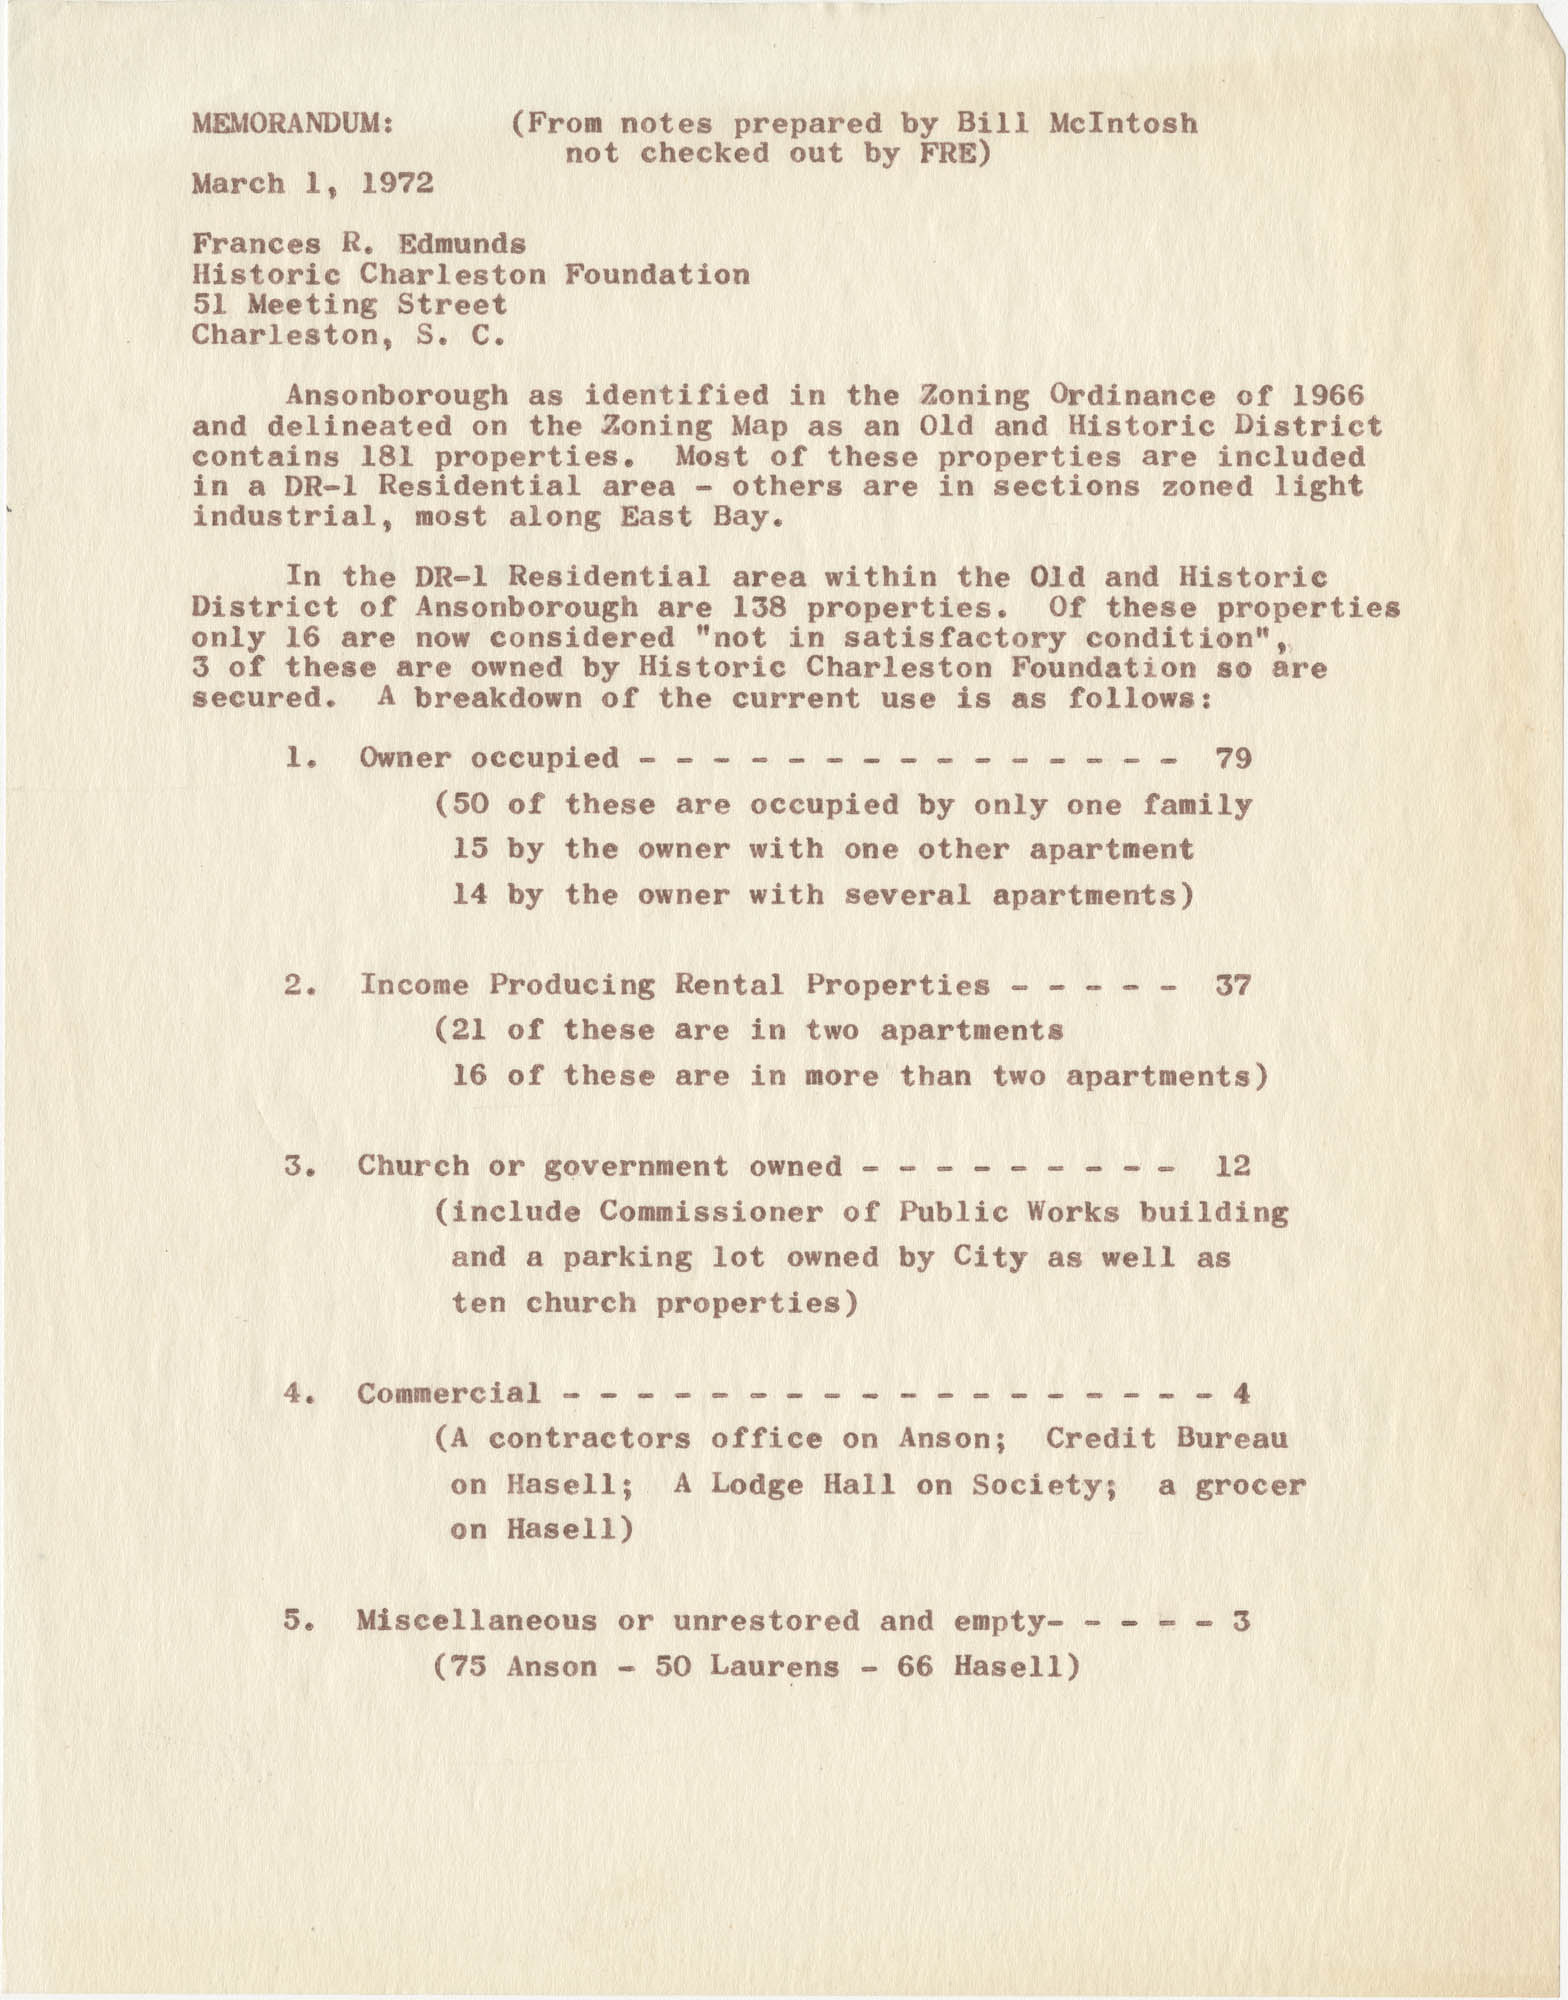 Memorandum from Frances R. Edmunds